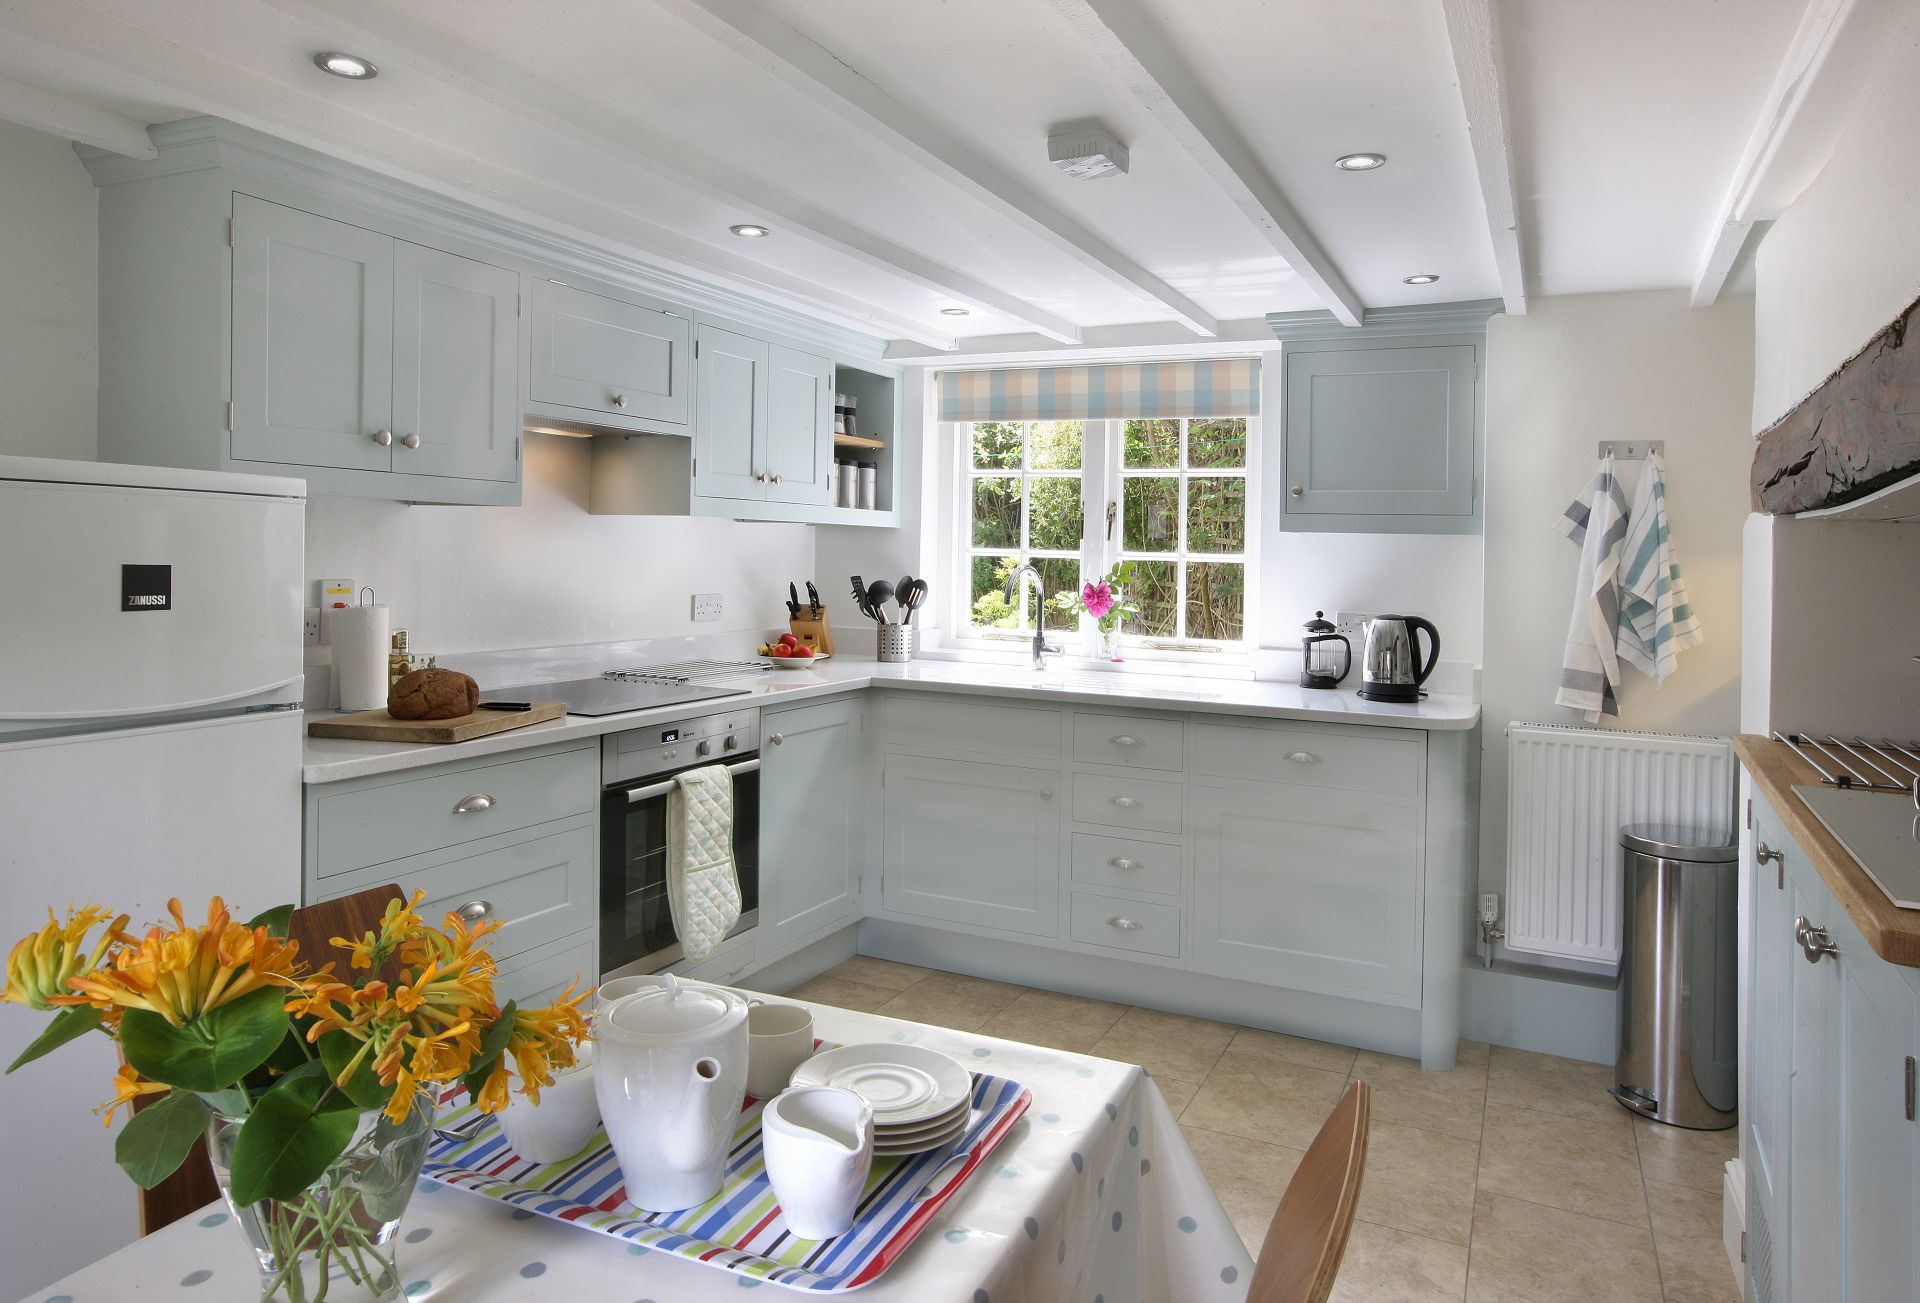 Odd Nod Cottage is located in Lulworth Cove and surrounding villages